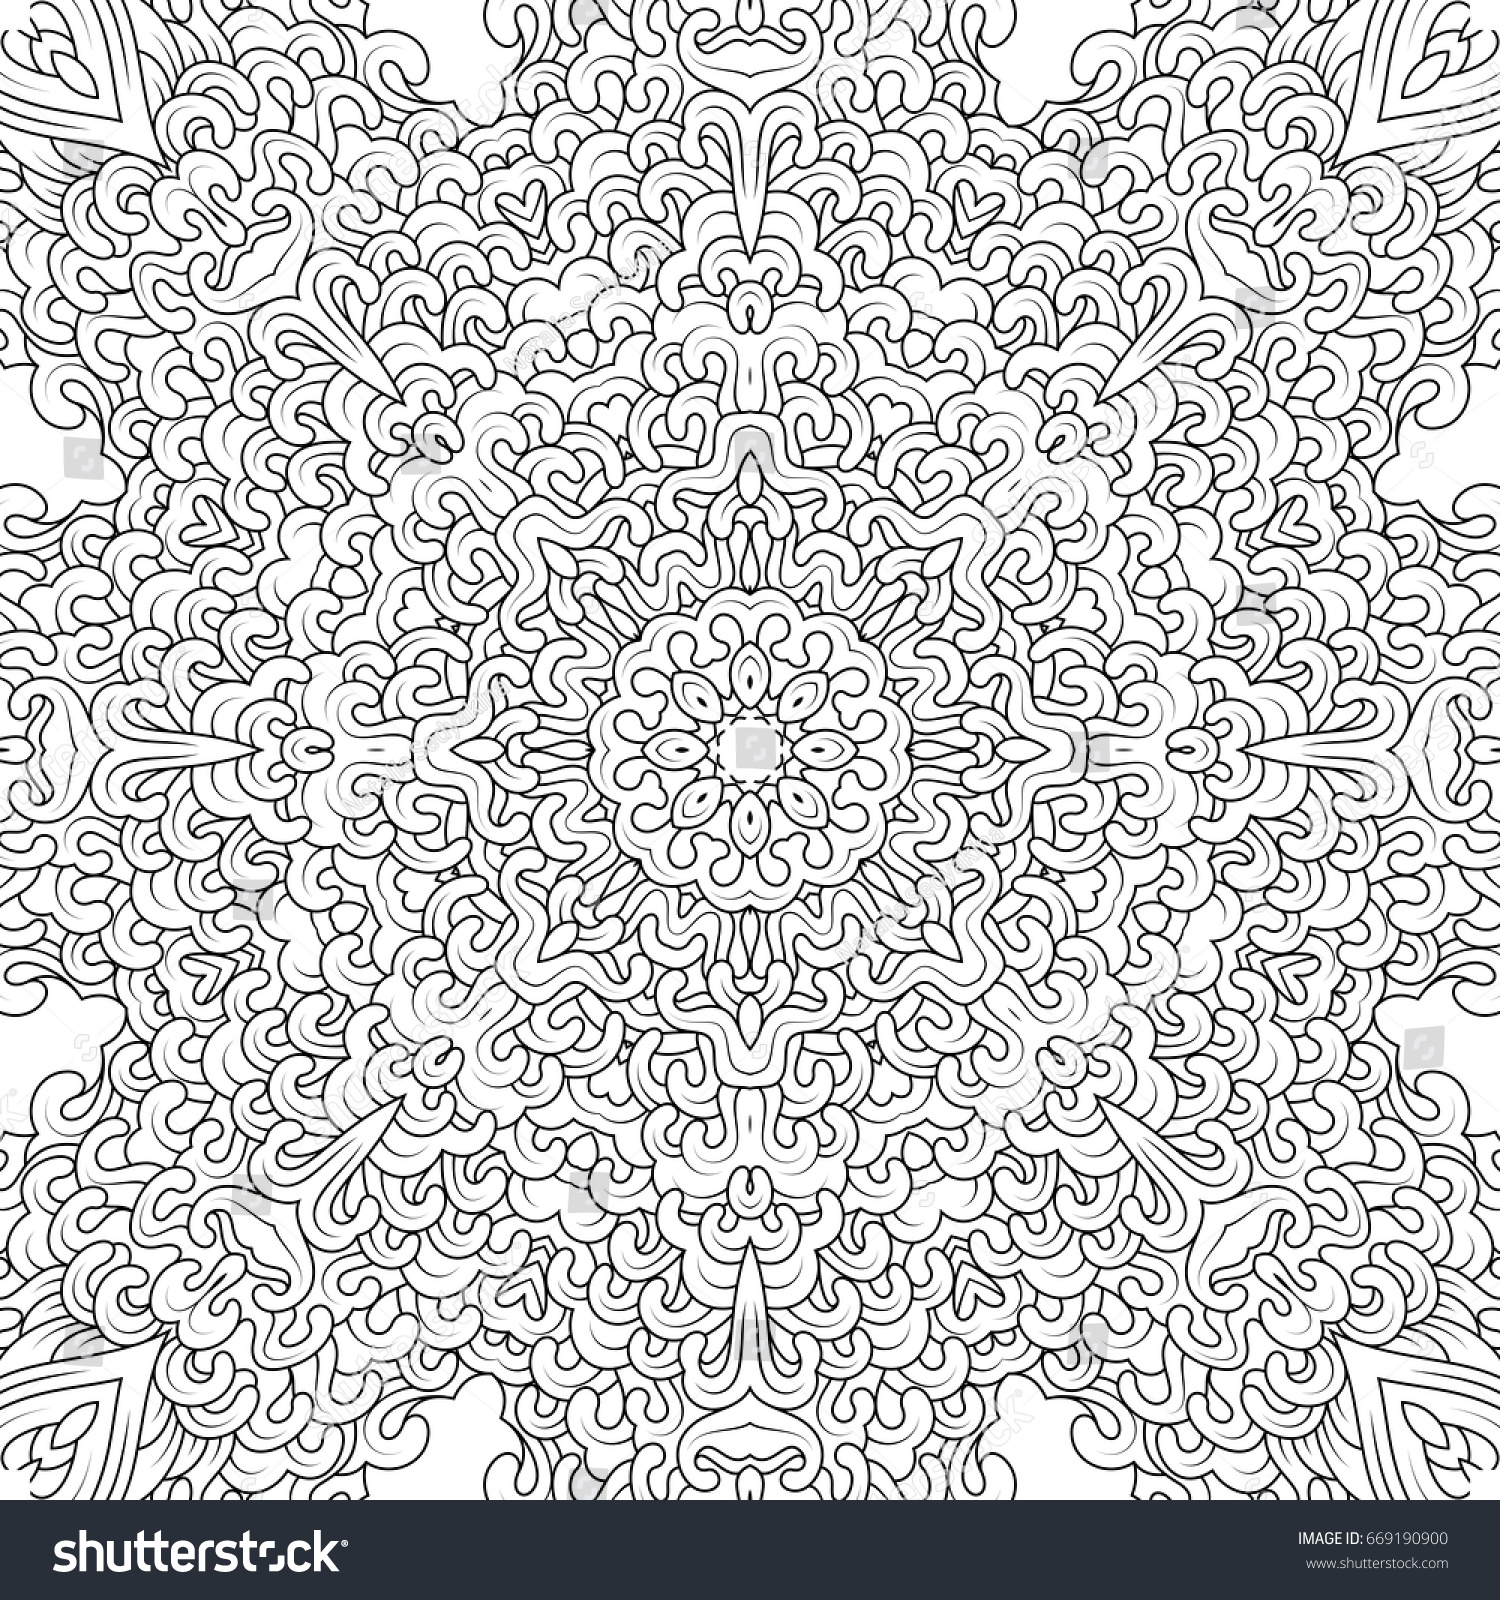 Vector Black And White Contour Mandala In Tibetan Iconography Style Adult Coloring Books Design